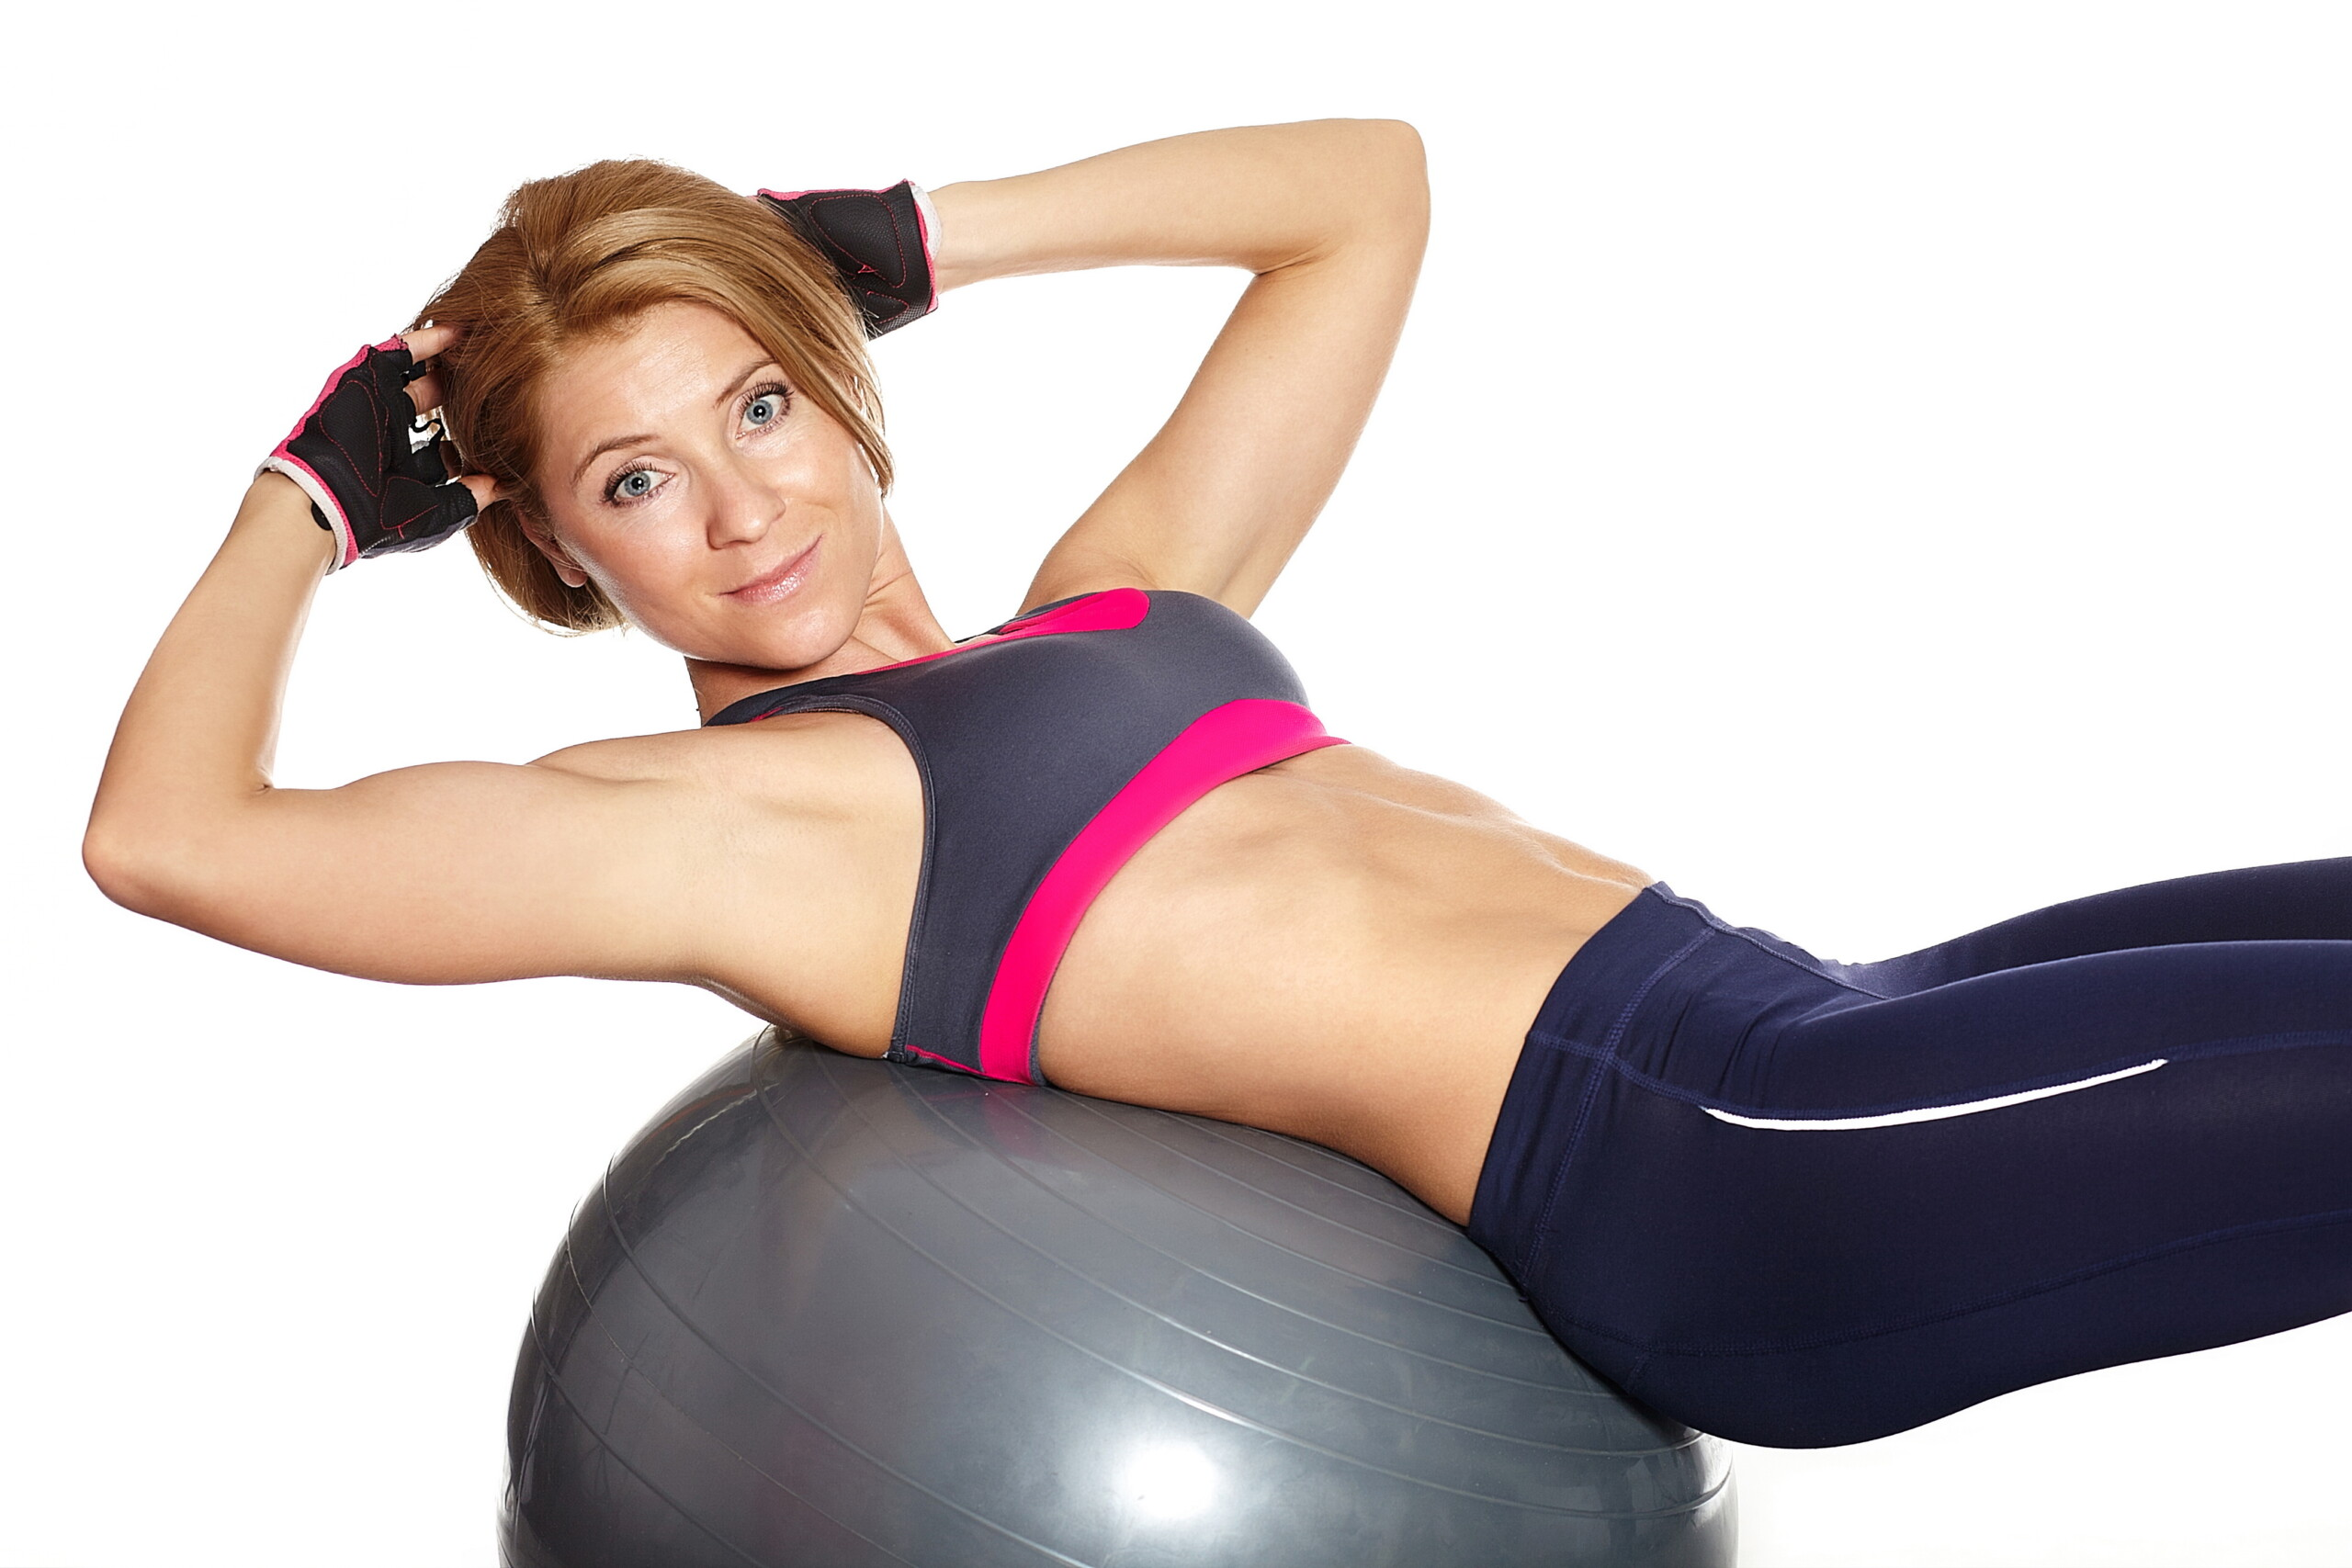 10 Ways to Add Intensity to Big Ball Crunches